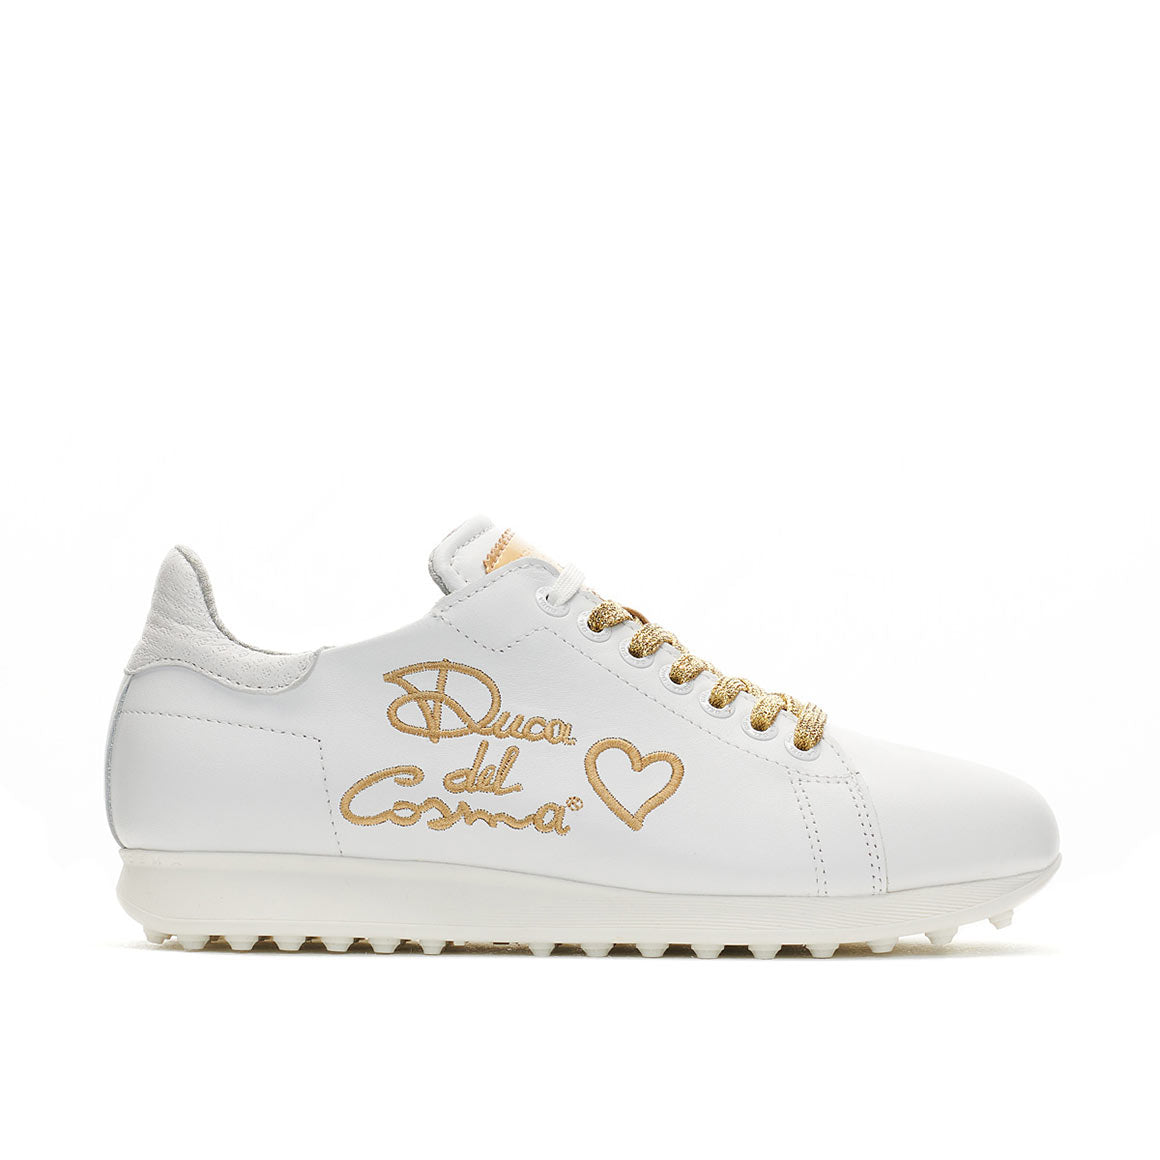 Women's Style White / Gold Golf Shoe